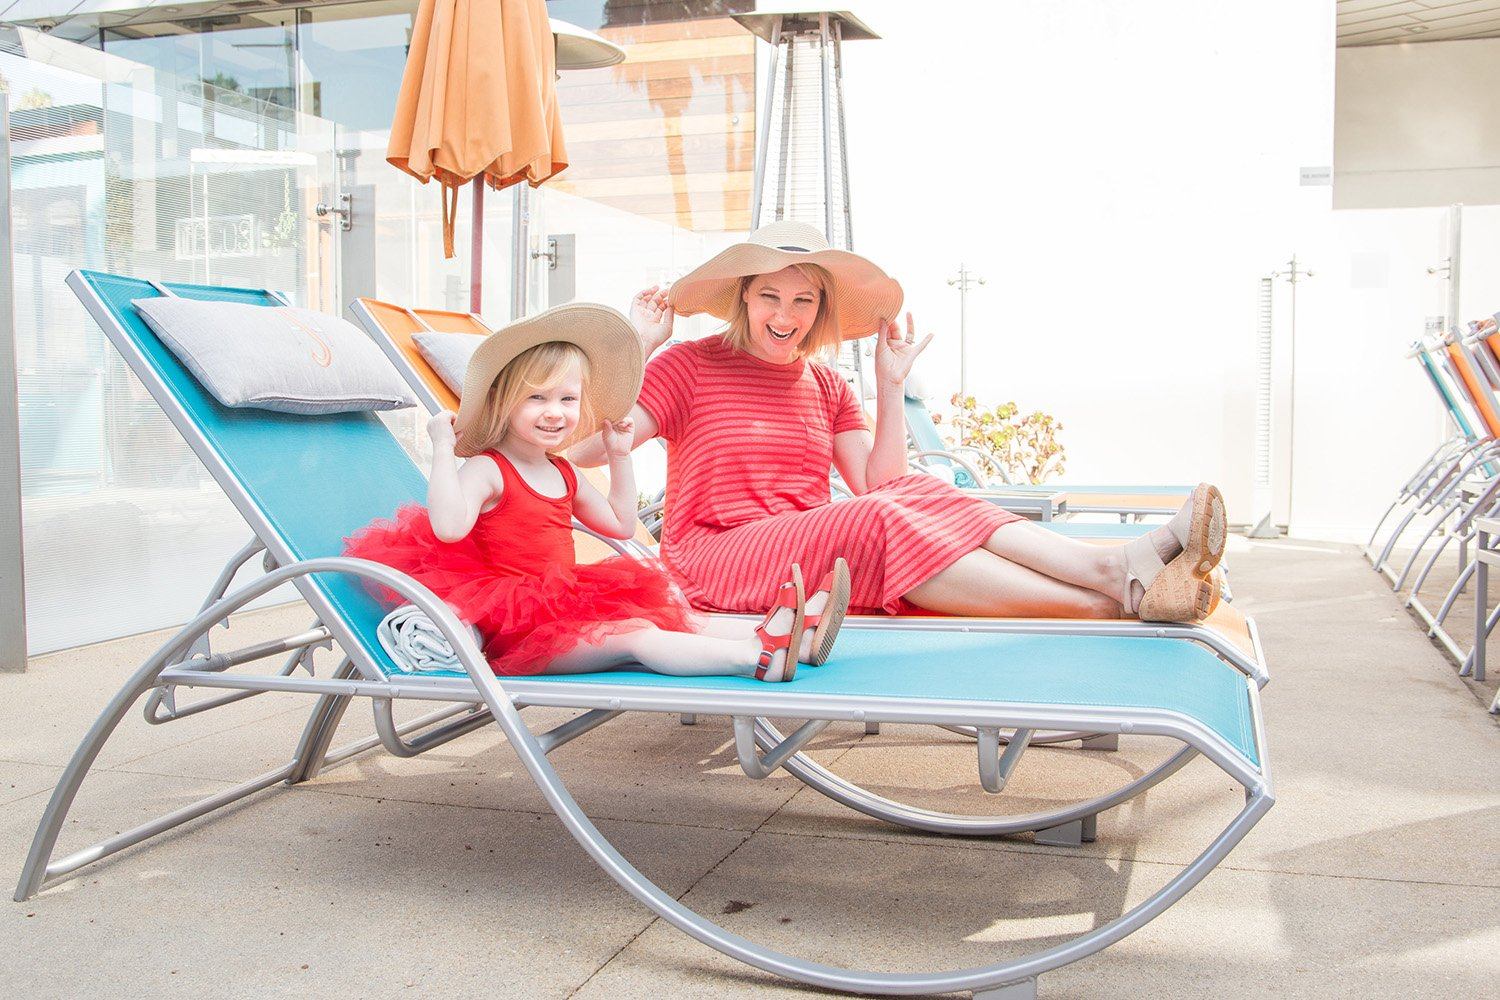 Dreaming of a vacation on the beaches of Southern California? This Santa Monica Travel Guide will help you plan the perfect family vacation.